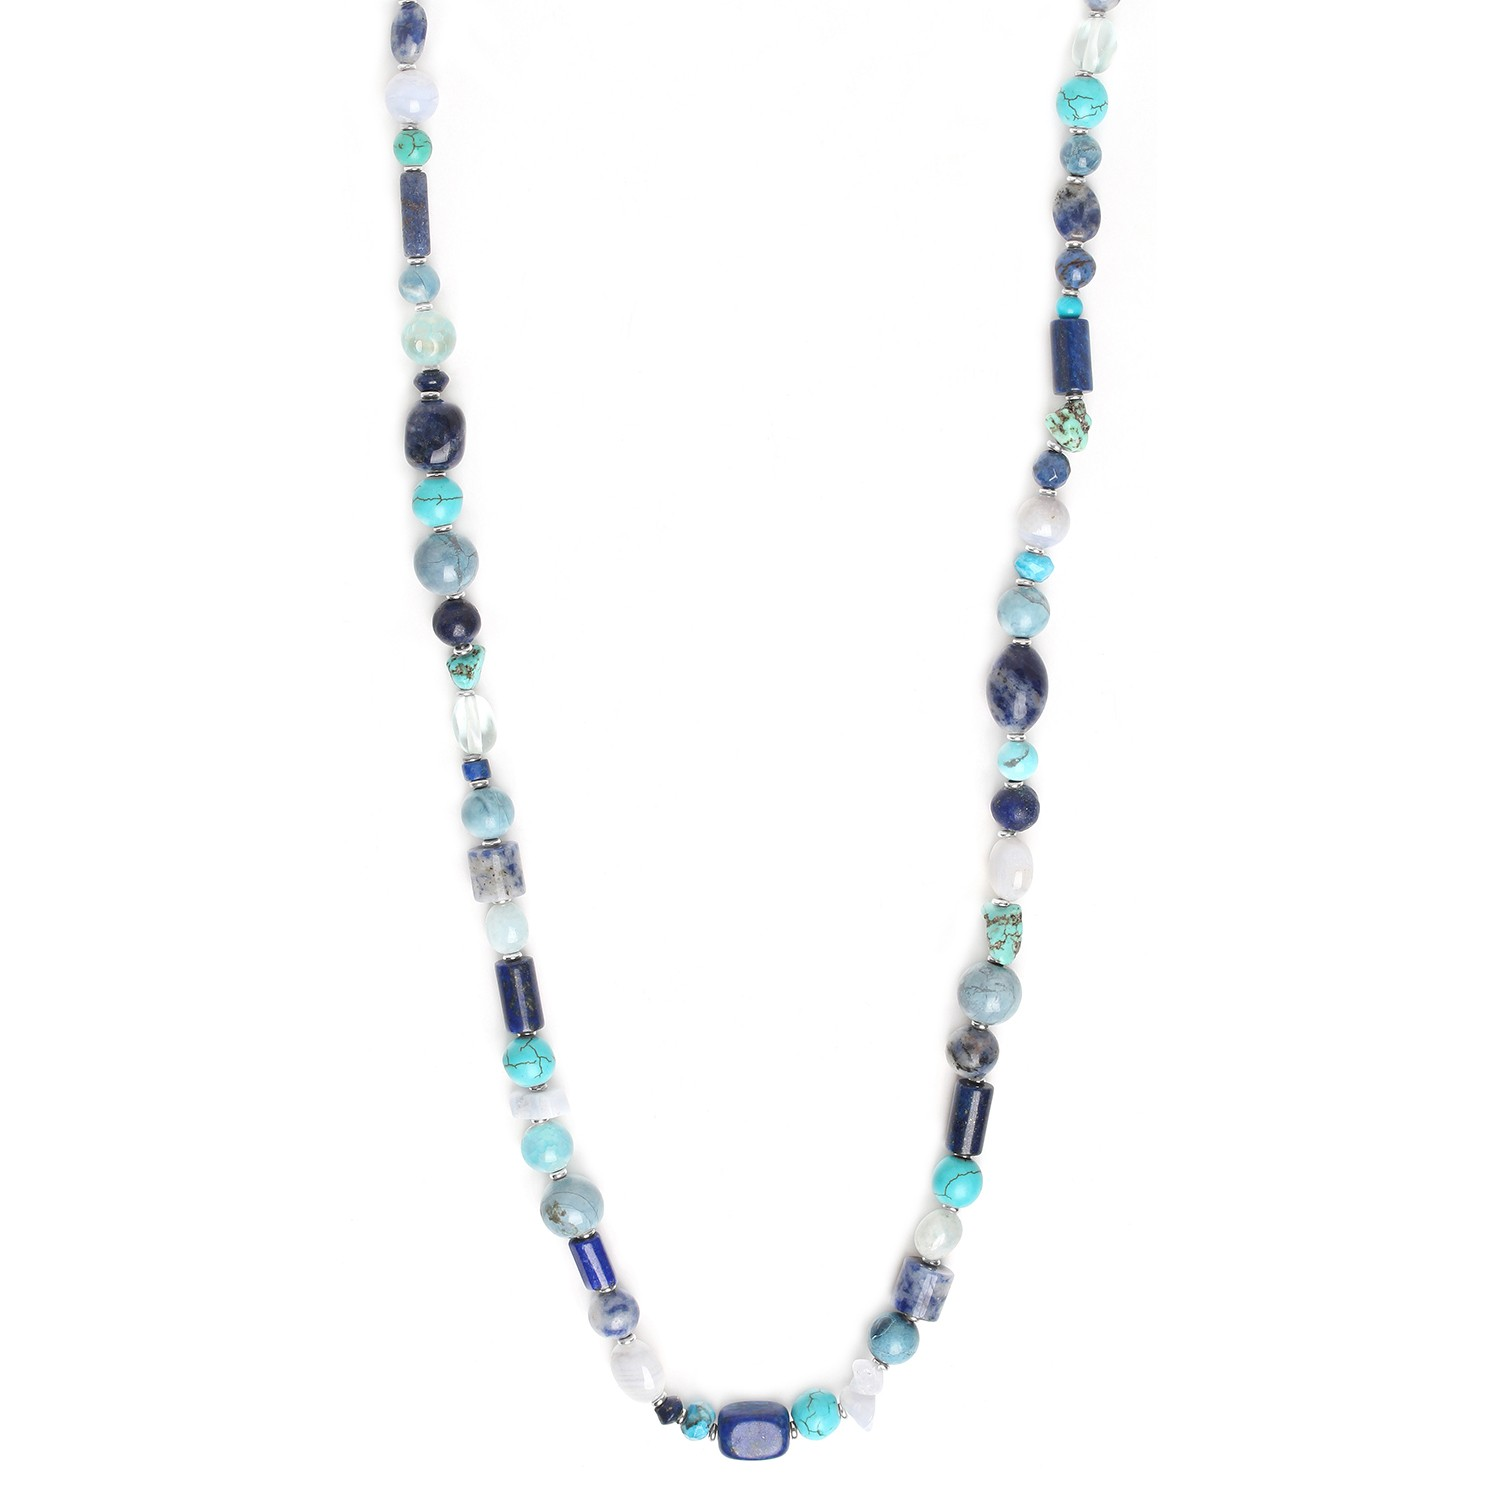 BLUE STONES collier long